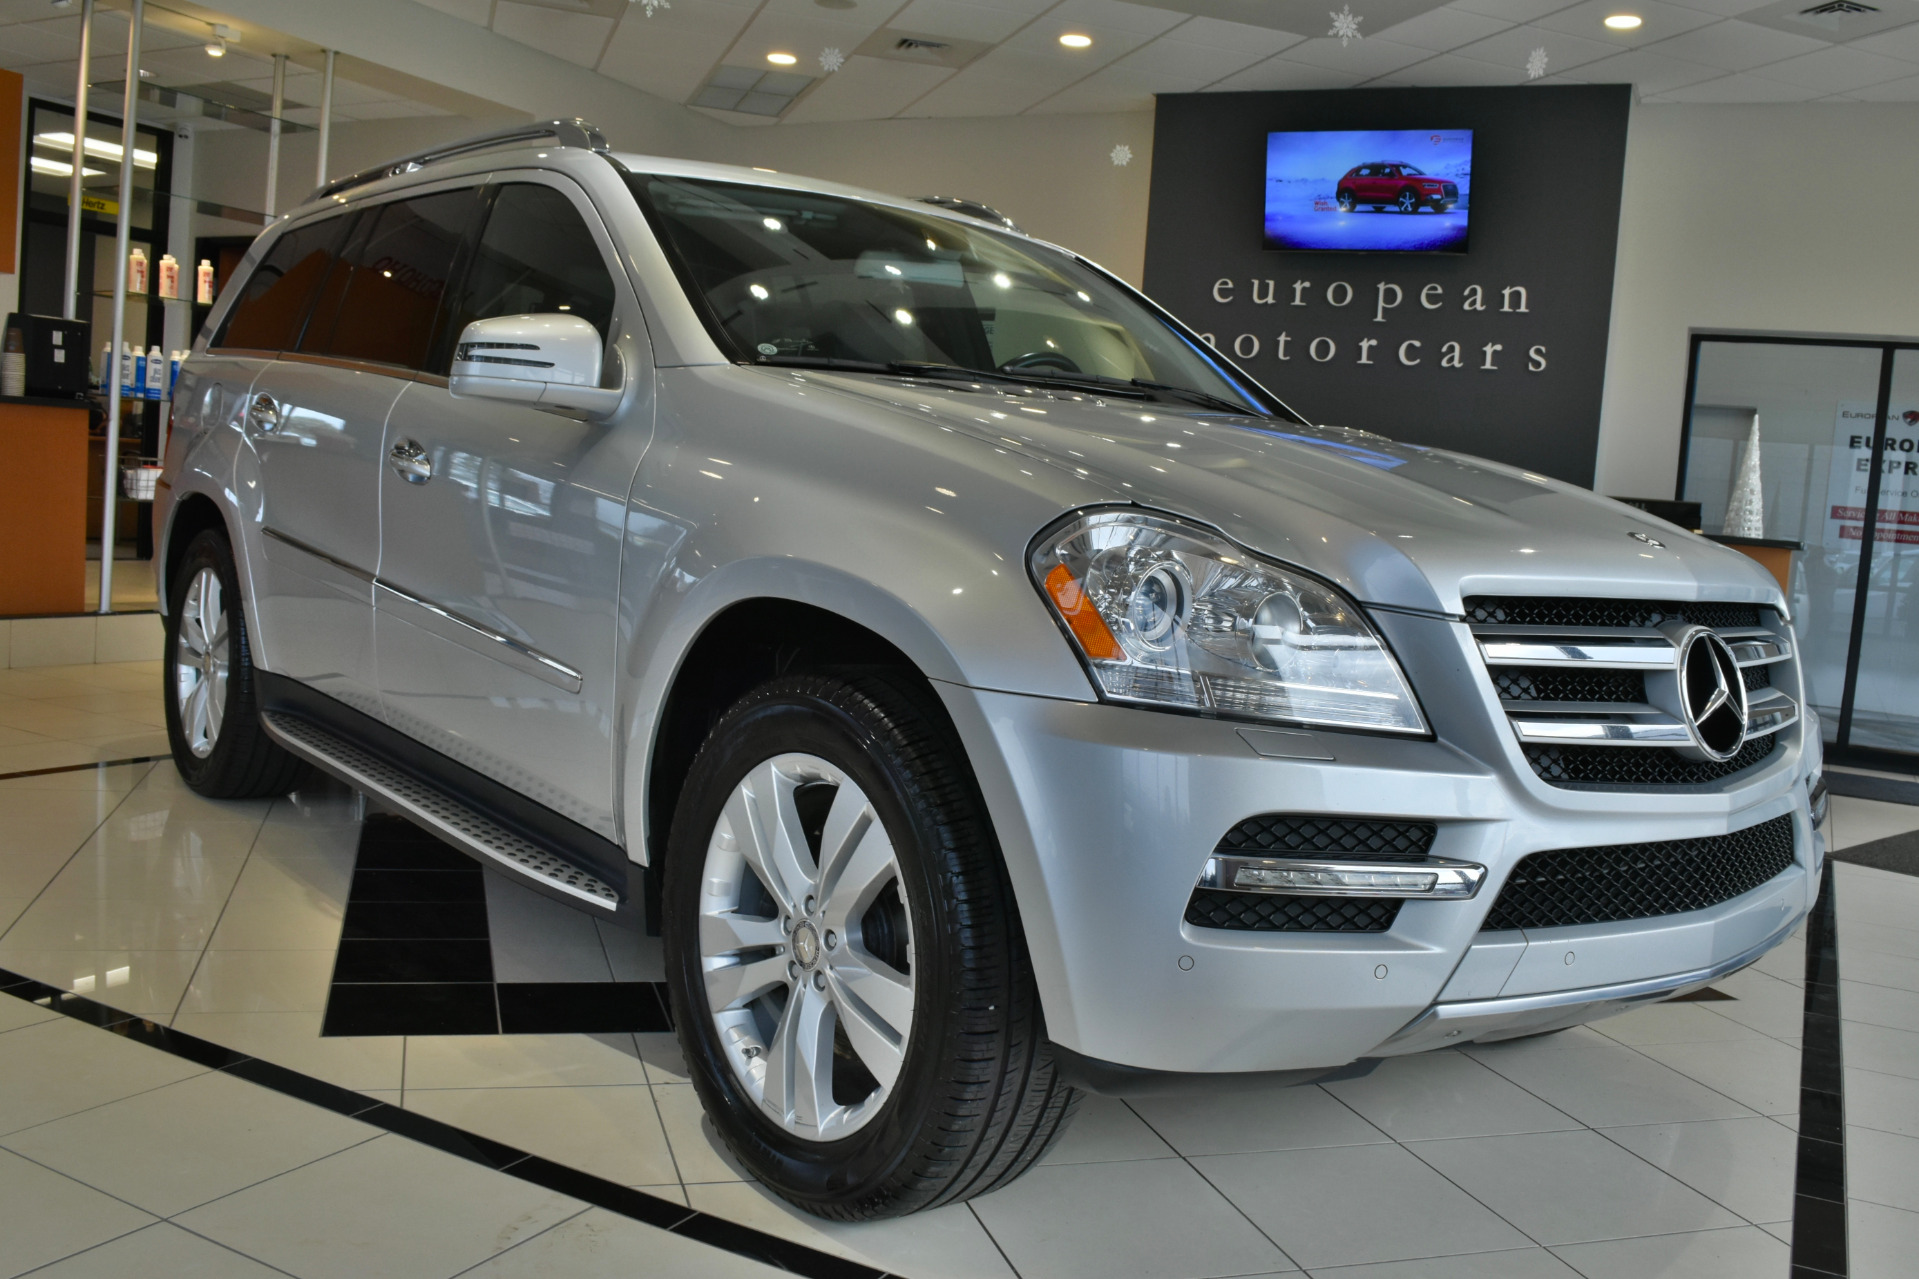 2012 mercedes benz gl class gl450 4matic for sale near for 2012 mercedes benz gl class gl450 4matic reviews